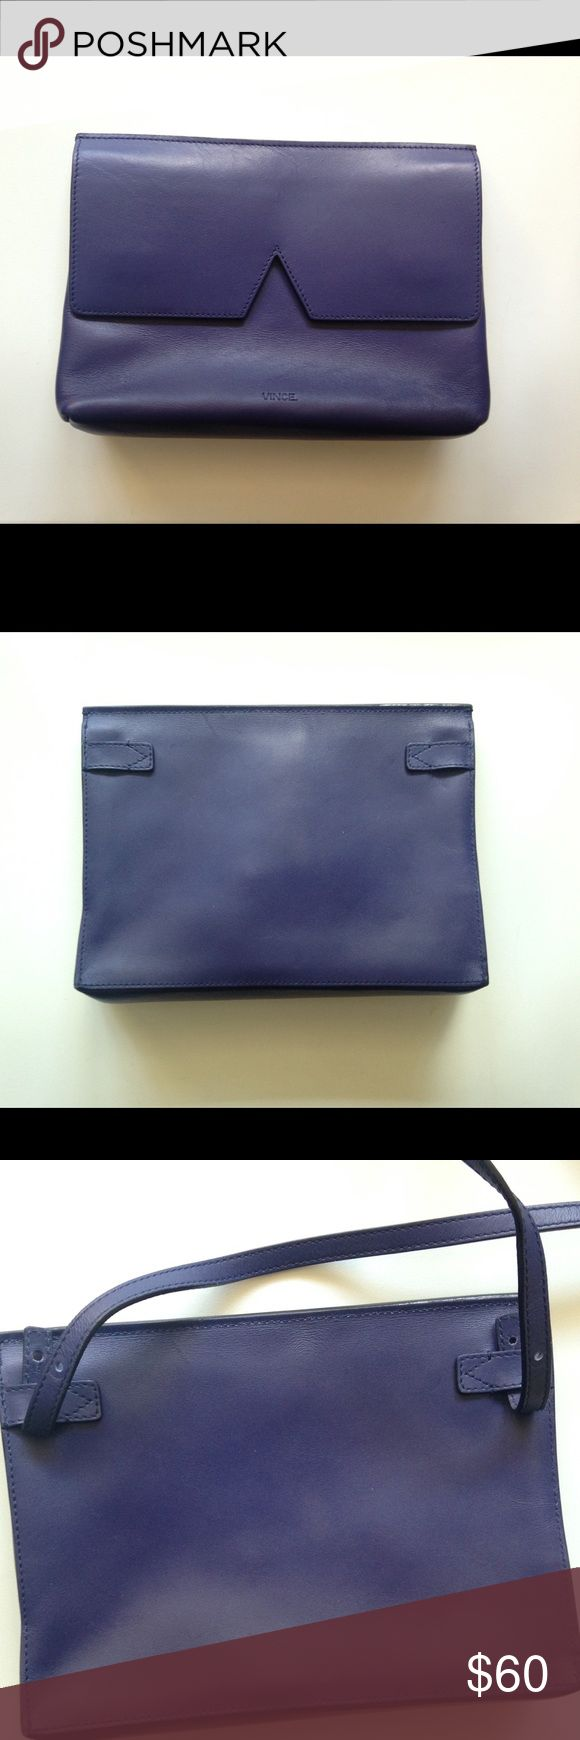 VINCE Signature Baby Crossbody Bag Amazing minimalist leather Crossbody bag in good shape but strap is missing the button closures - see pics. Can use as a clutch without strap but you can likely purchase some handbag replacement button closures online. Offers welcomed! Vince Bags Crossbody Bags